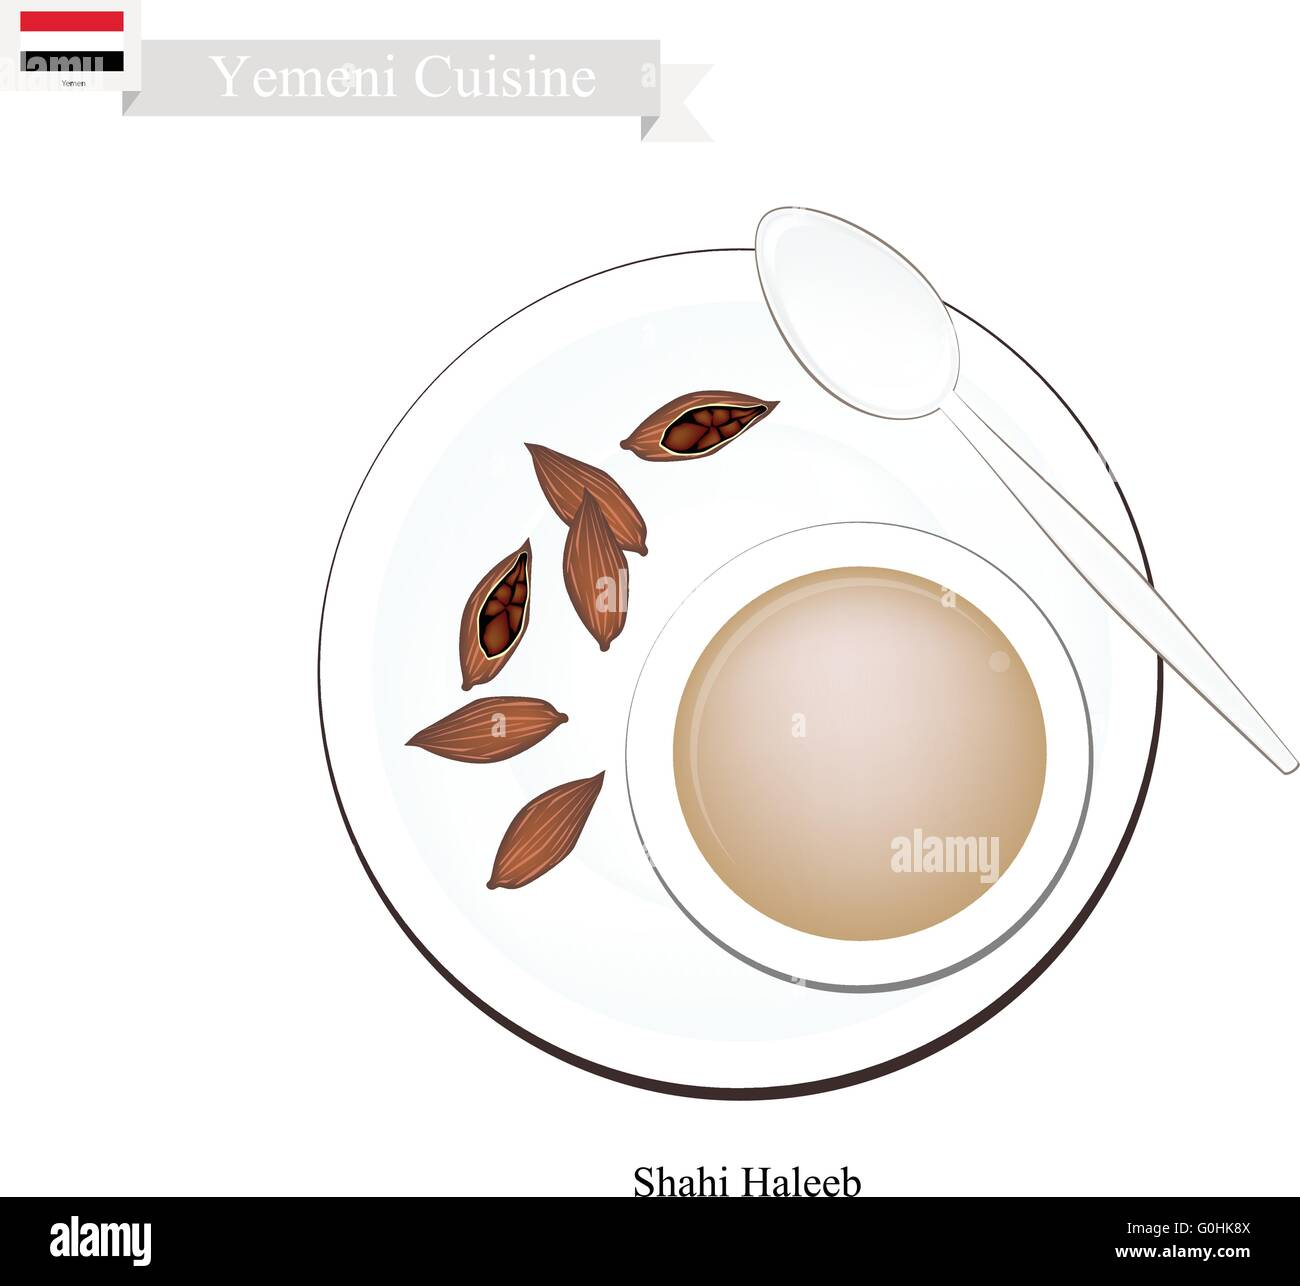 Yemen Cuisine, Shahi Haleeb or Traditional Milk Tea with Sugar, Cardamom Pods and Cloves. One of The Most Popular - Stock Vector